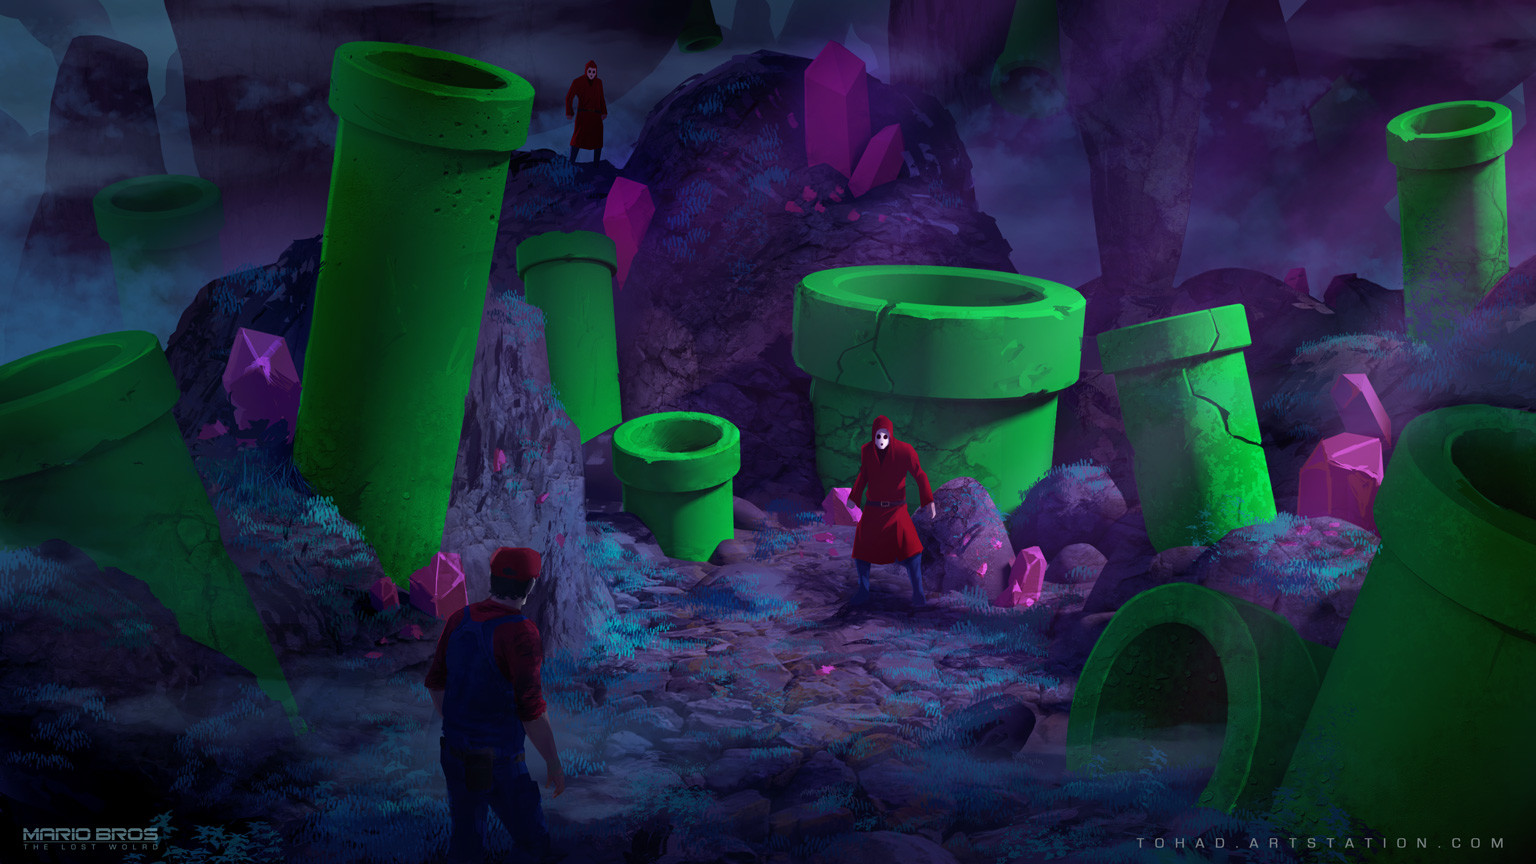 Mario Bros : The Lost World, Crystal Cave environment concept